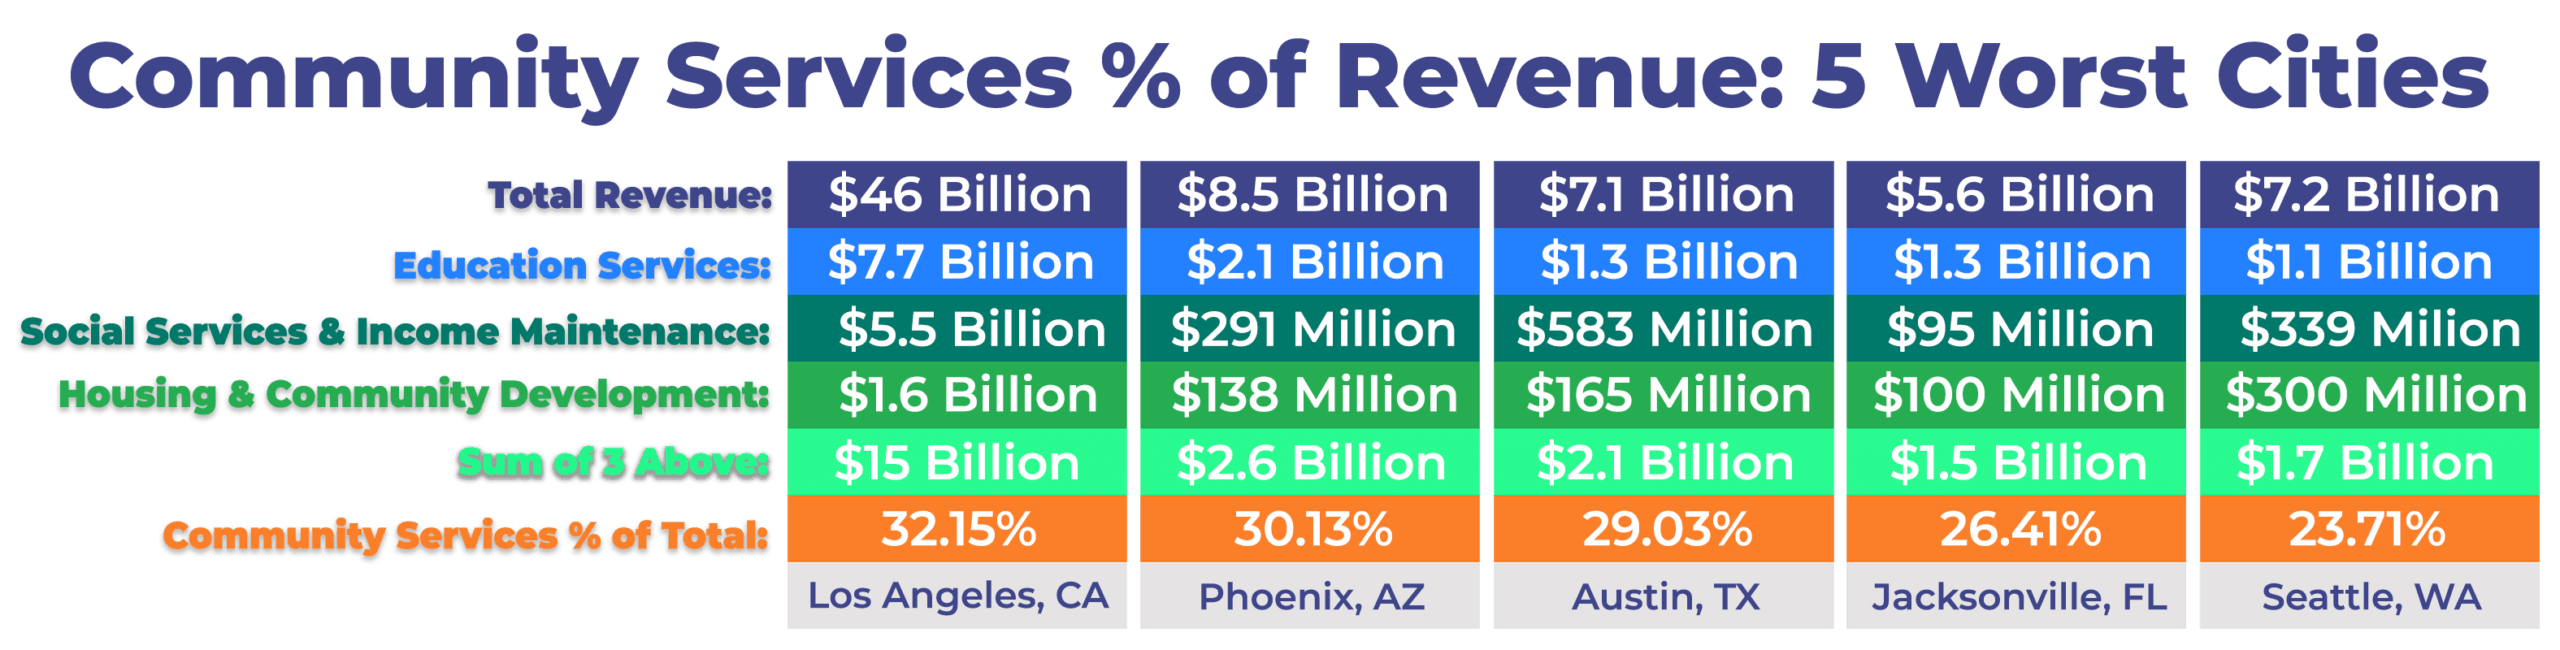 Community Services Spending % of Total Revenue 5 Worst Cities